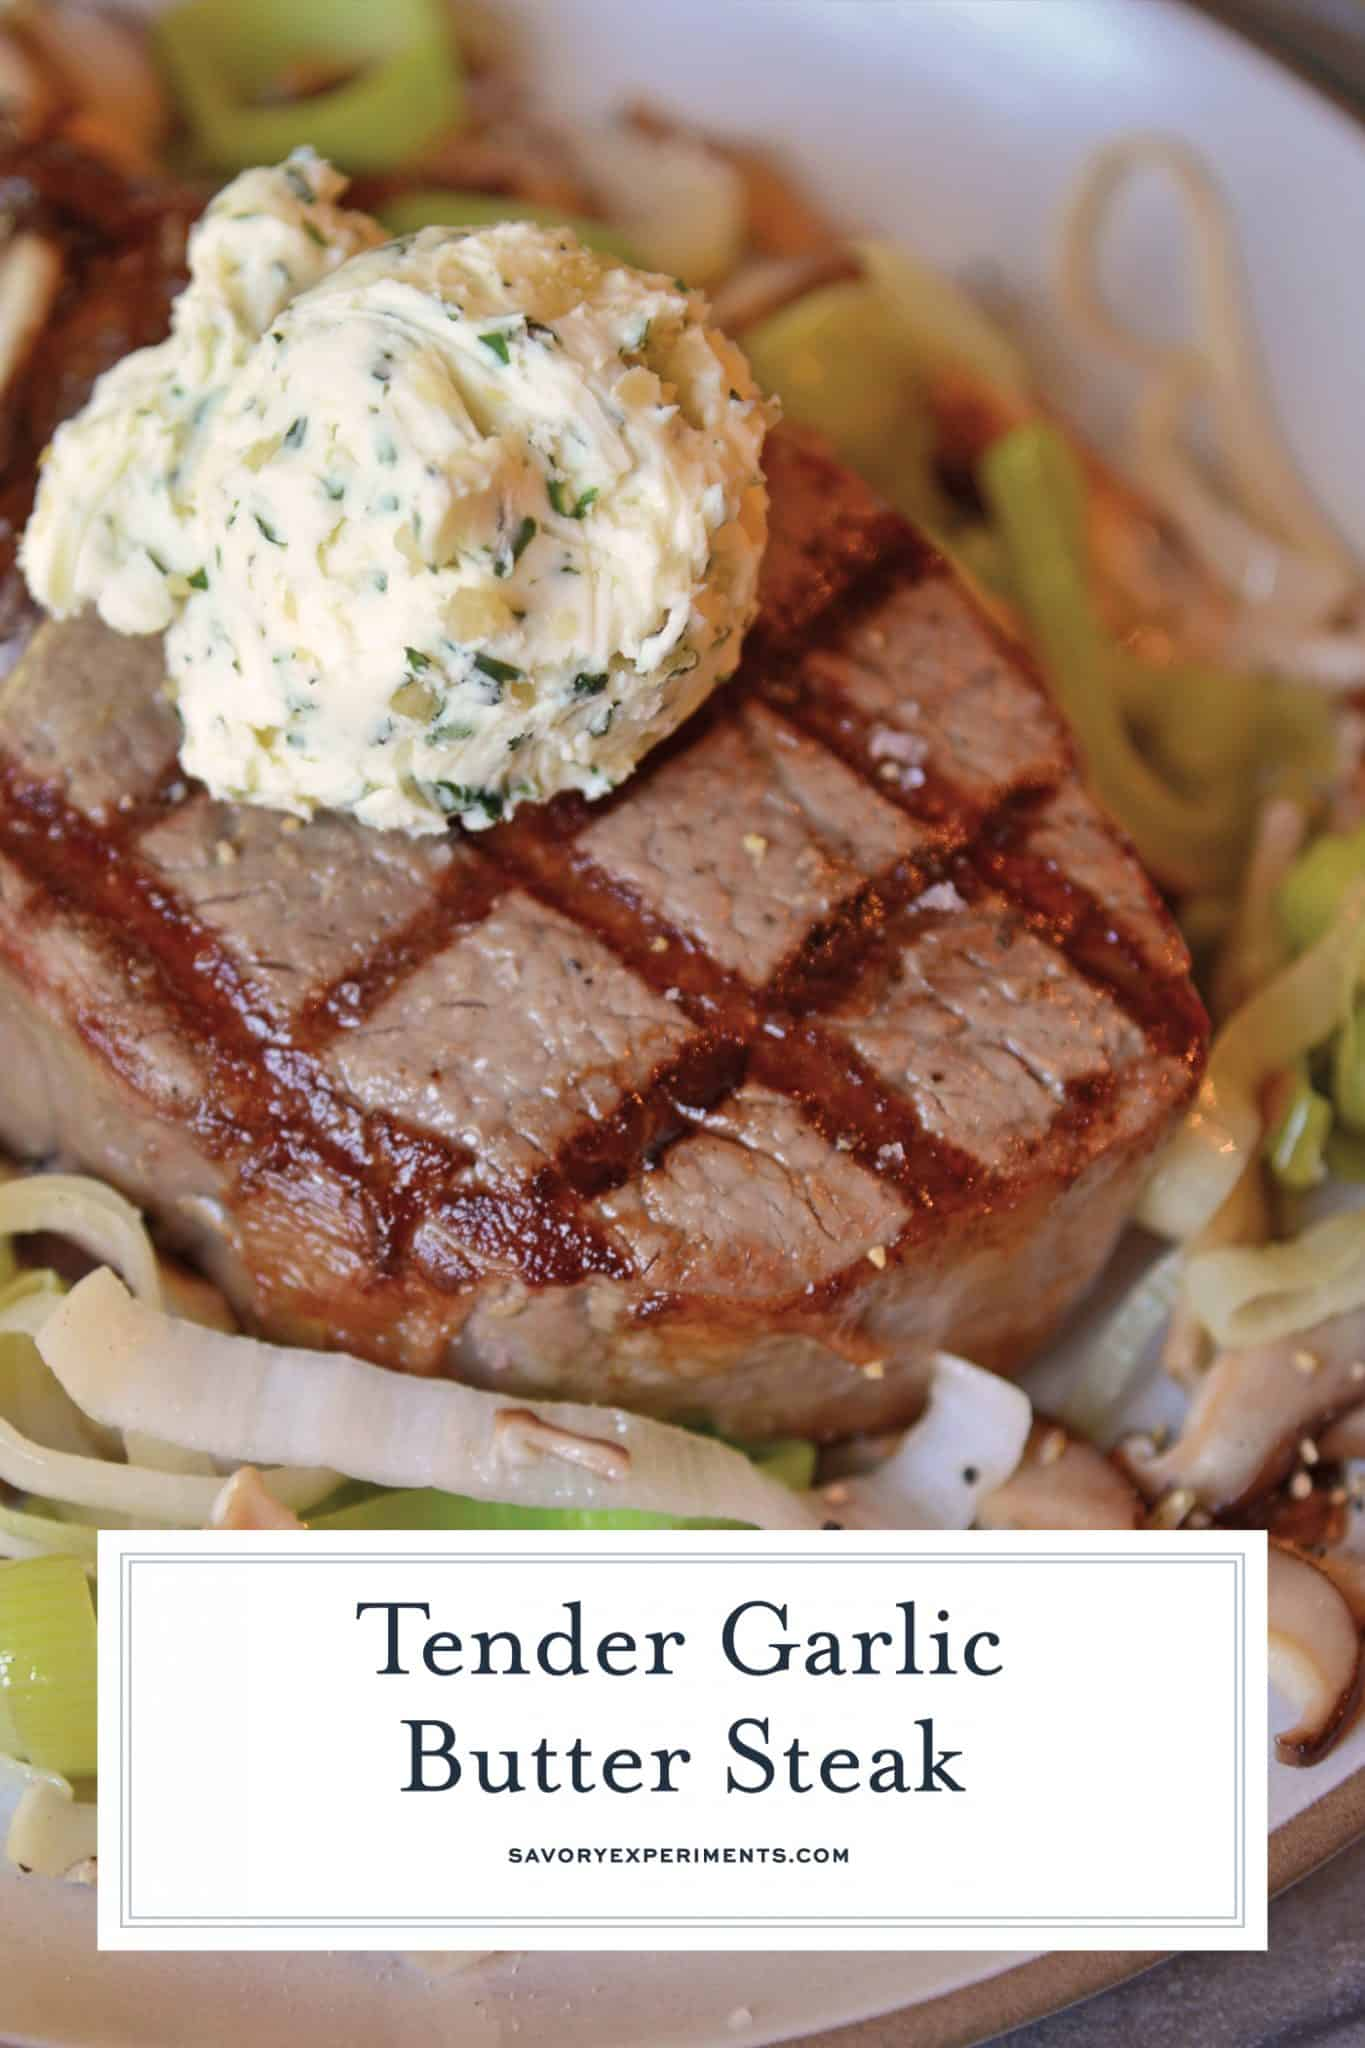 Garlic Butter Steak is perfect for any occasion! Grilled filet mignon is perfect for a special date night or just for a typical weeknight meal! #filetmignonrecipe #garlicbuttersteak #grillingfiletmignon www.savoryexperiments.com